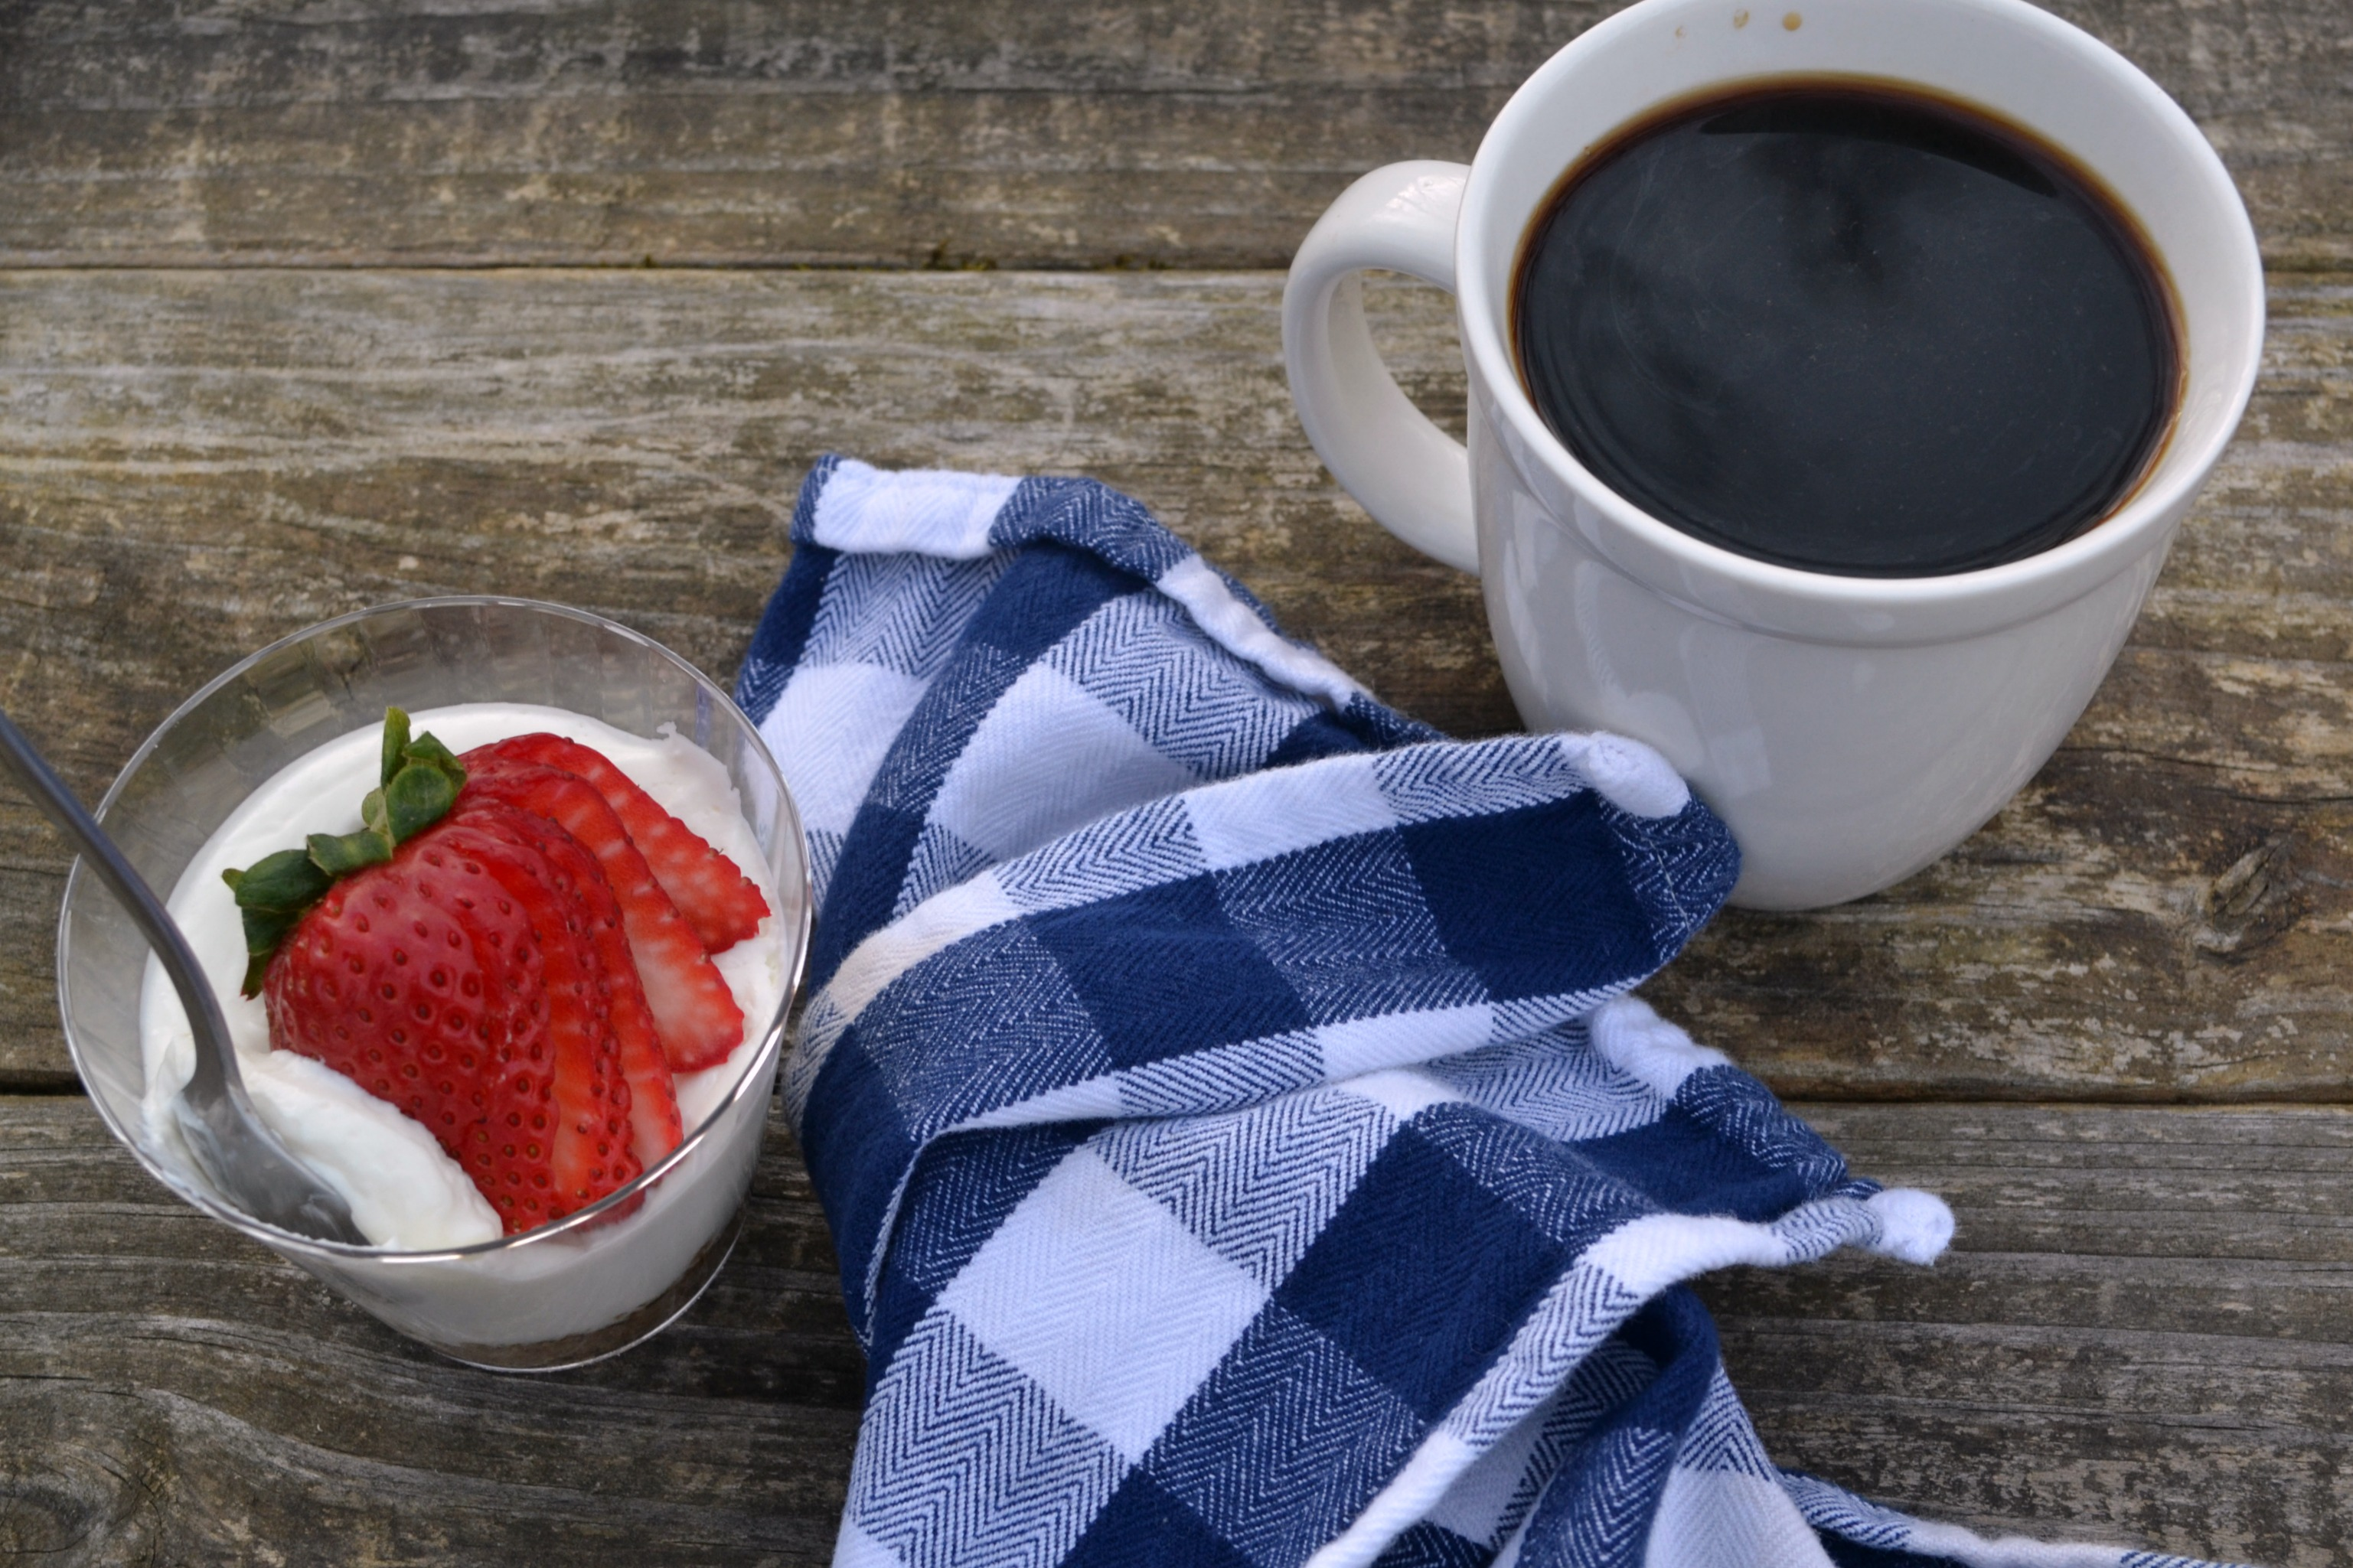 a photo of a breakfast cheese cake with a sliced strawberry on top with a cup of coffee next to it